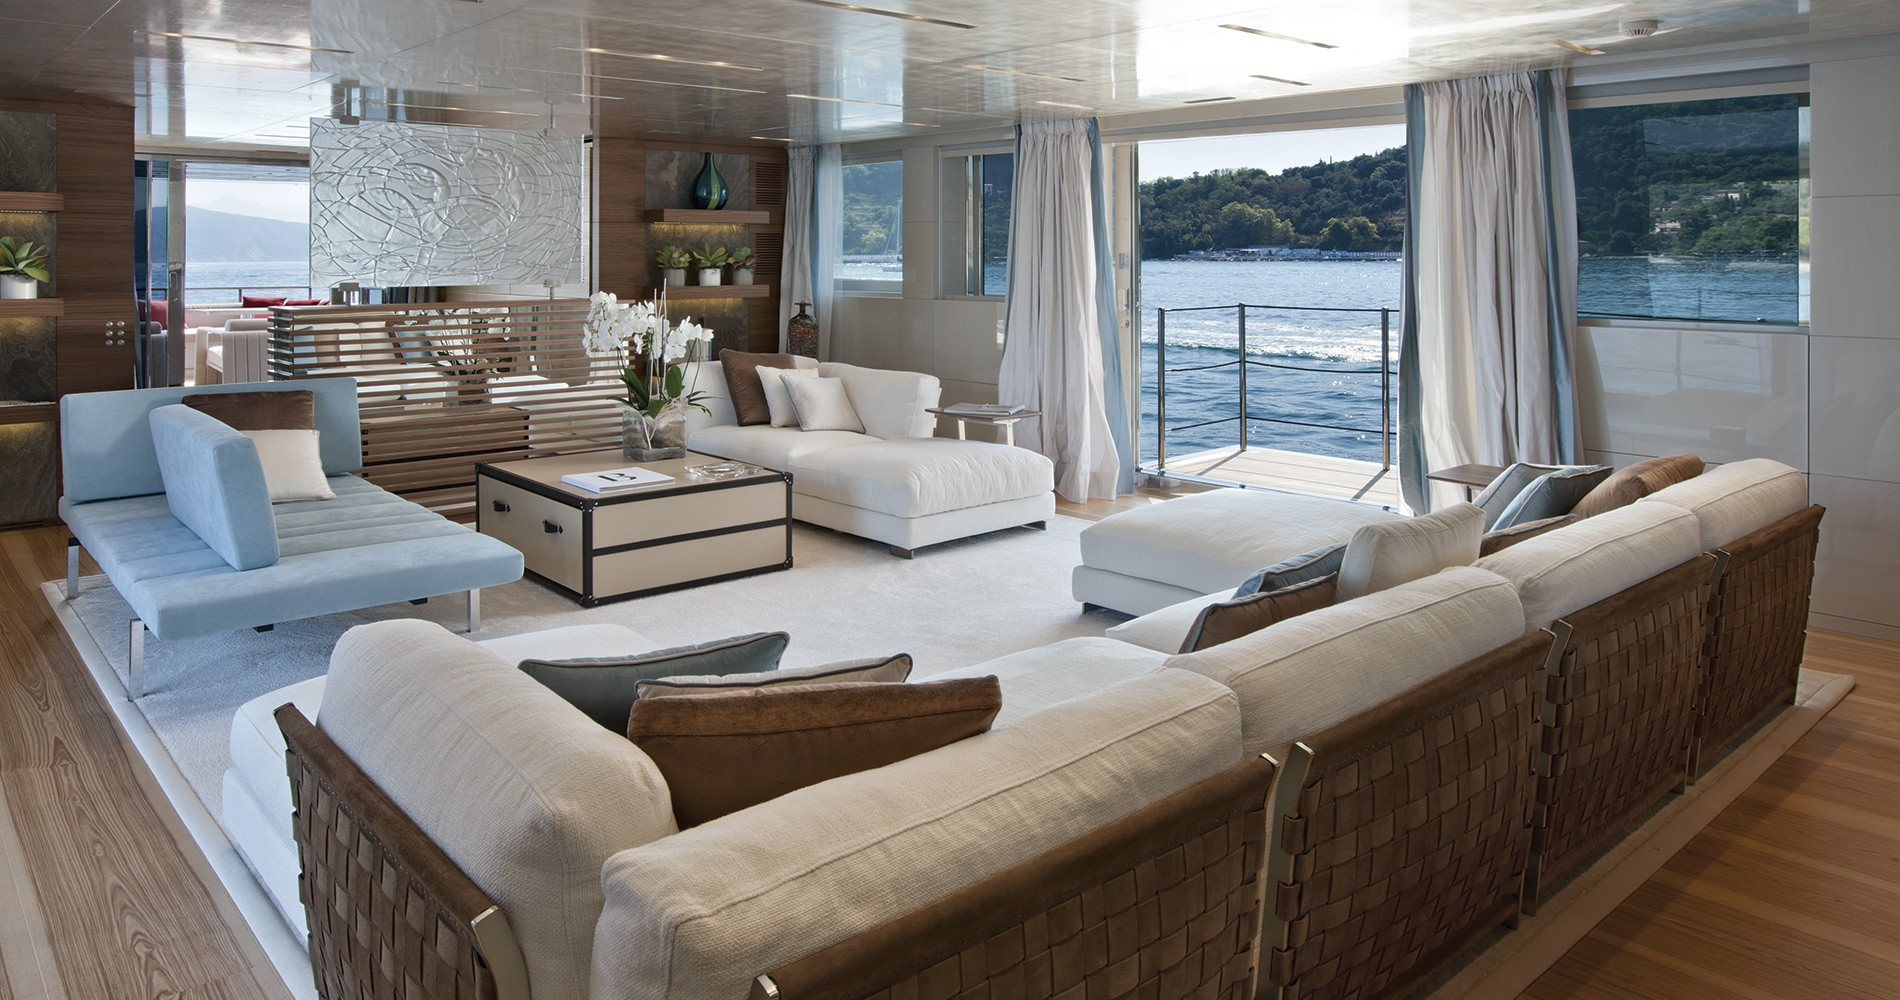 sanlorenzo-superyacht-40-alloy-scorpion-interno